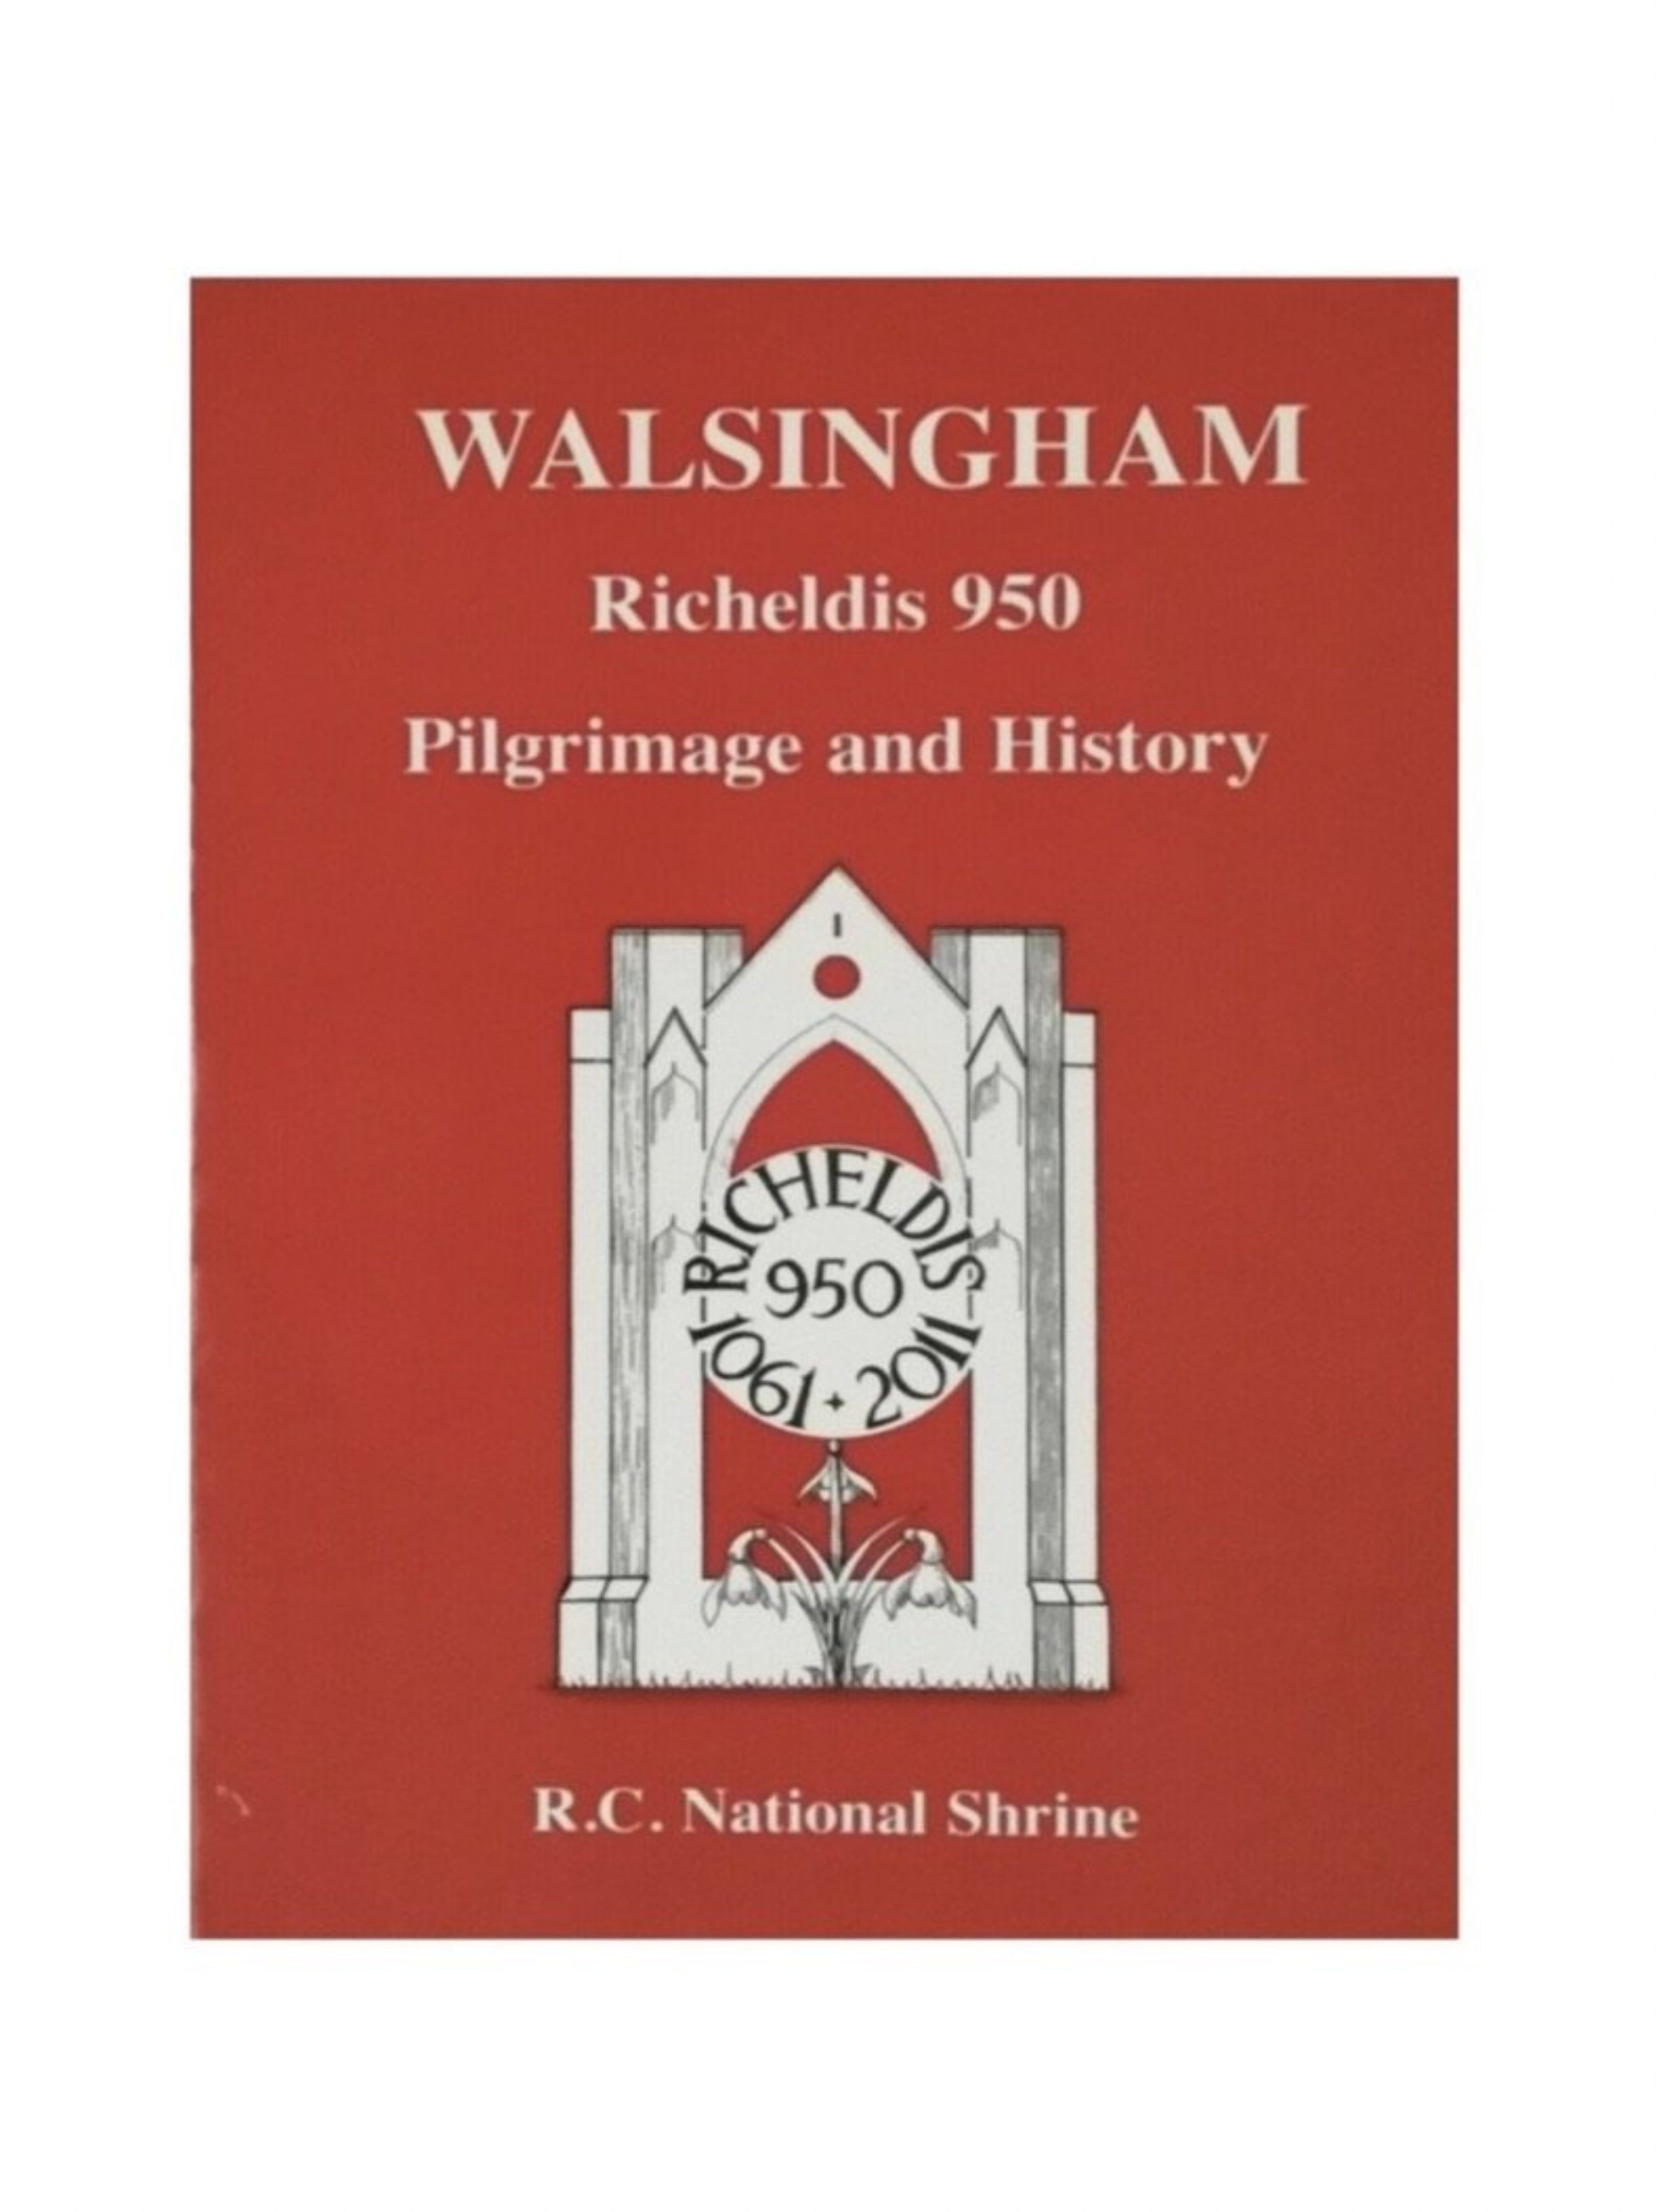 Walsingham: Richeldis 950 Pilgrimage and History